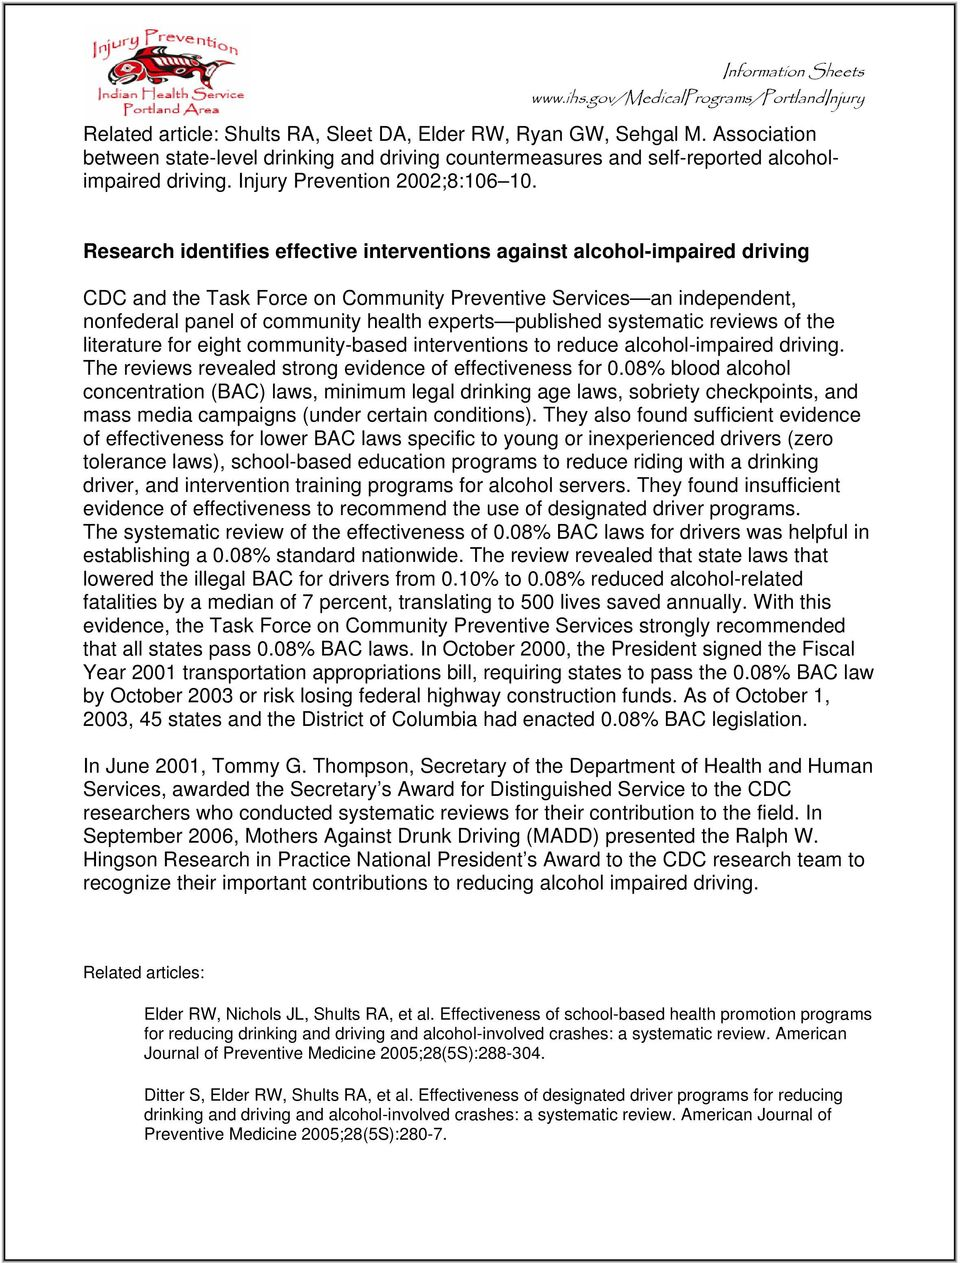 Research identifies effective interventions against alcohol-impaired driving CDC and the Task Force on Community Preventive Services an independent, nonfederal panel of community health experts